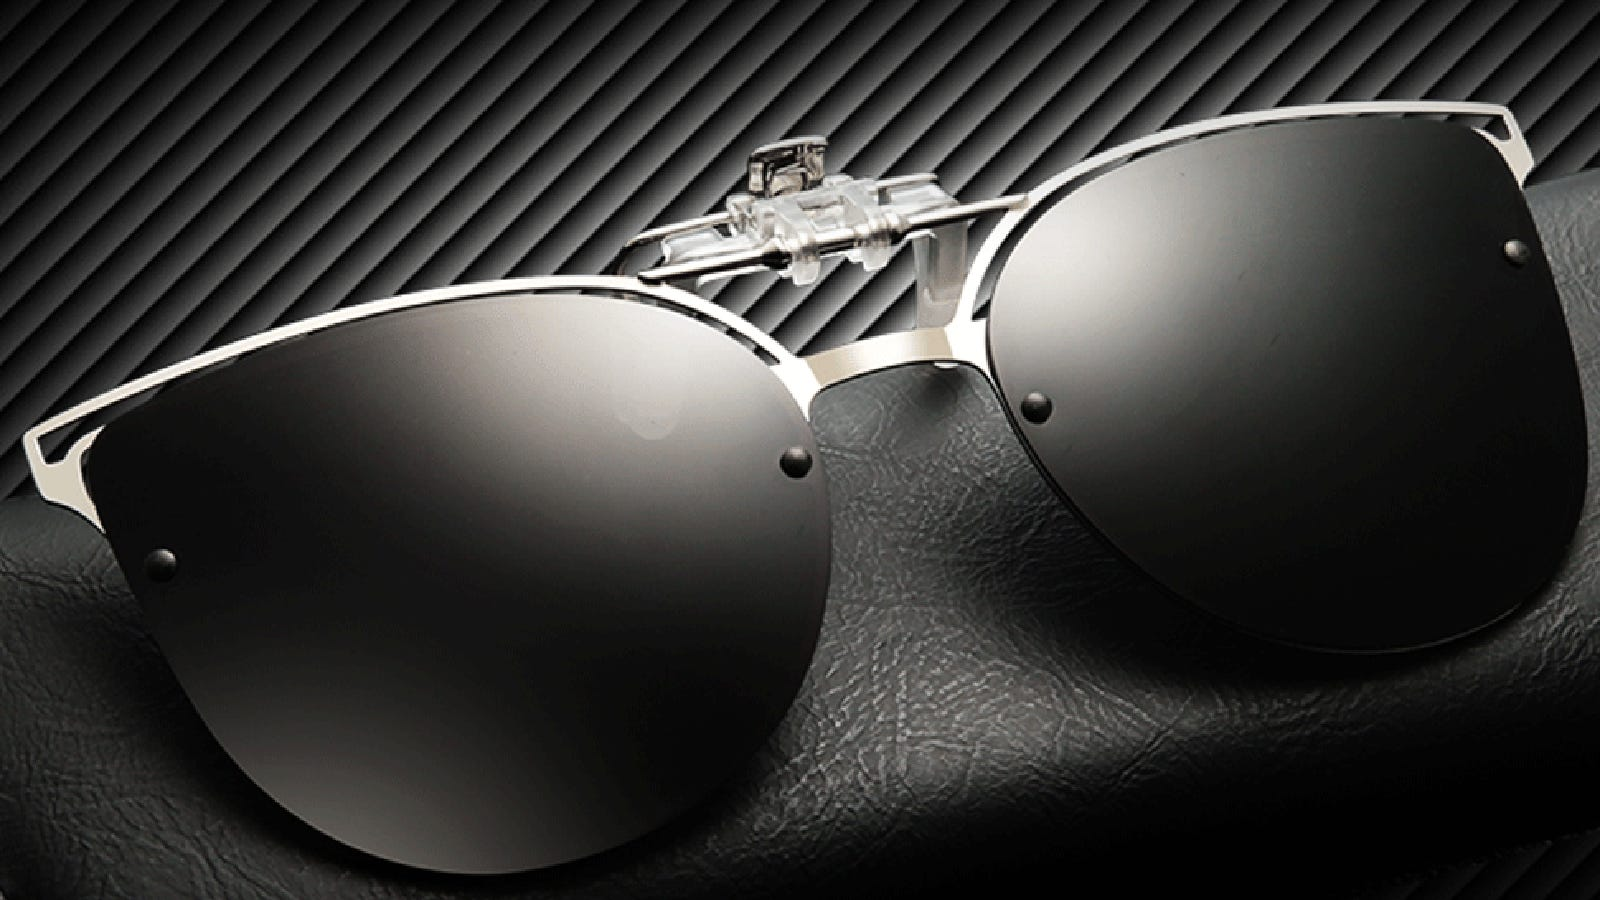 Clip-on sunglasses sit on a black textured surface.